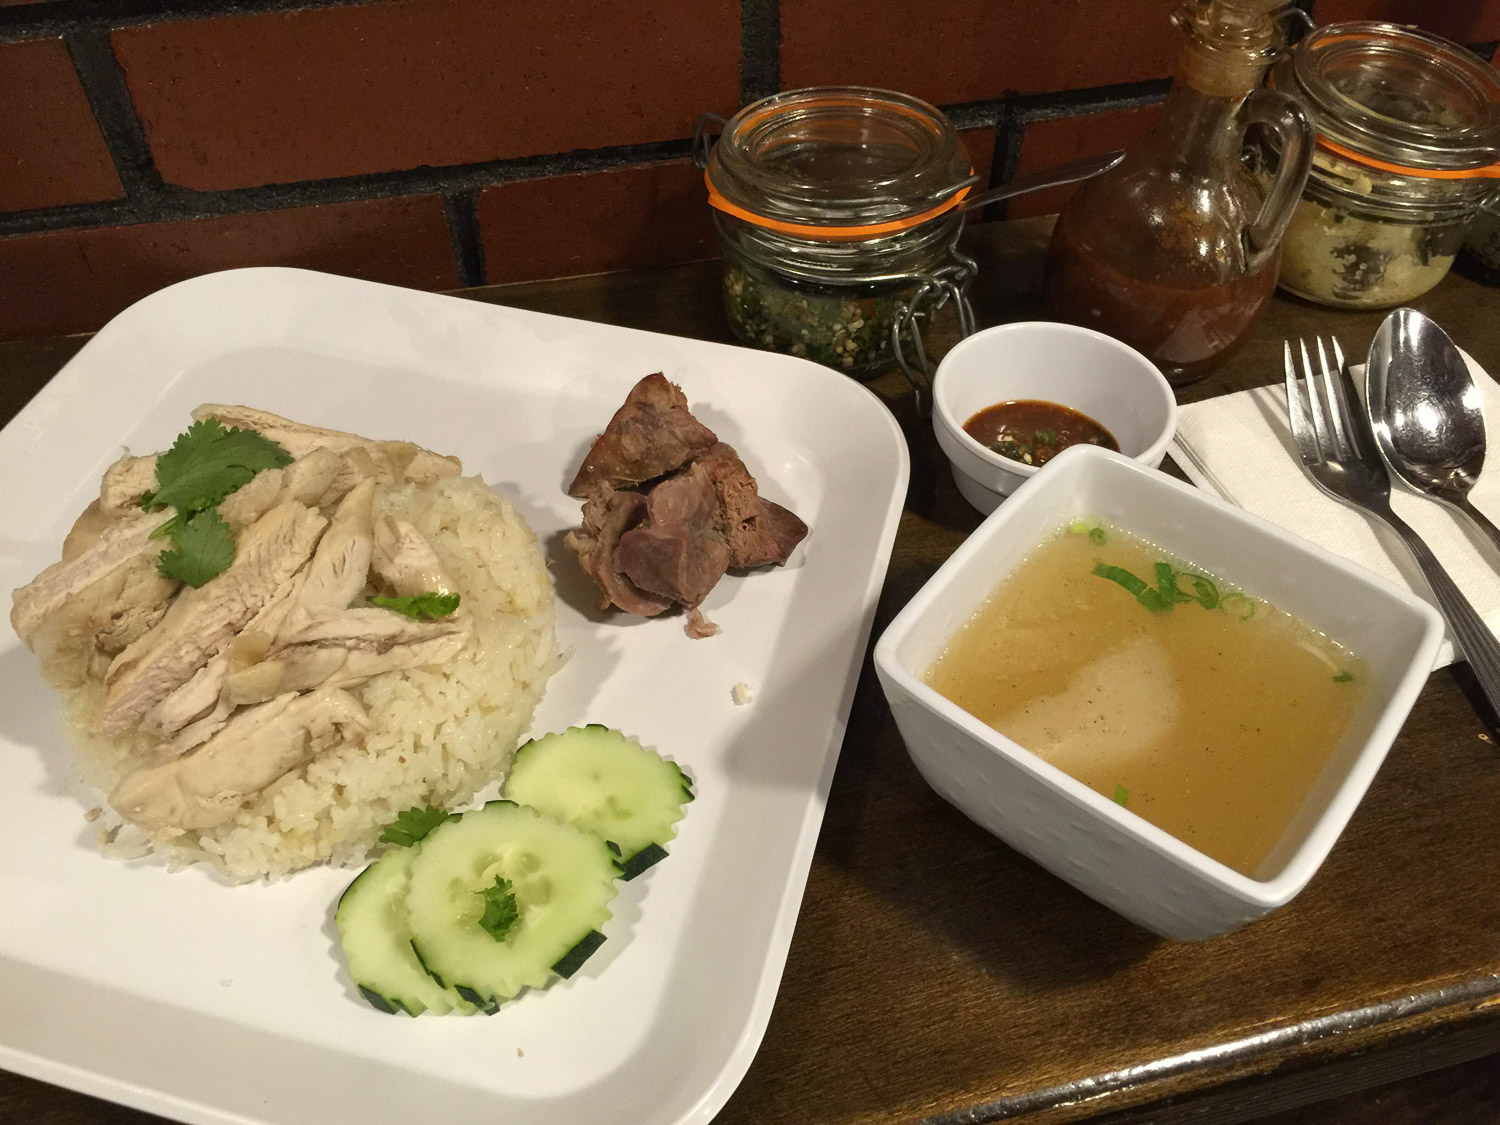 Hainanese chicken by way of Thailand. Gizzards optional. So simple but so good! $9.